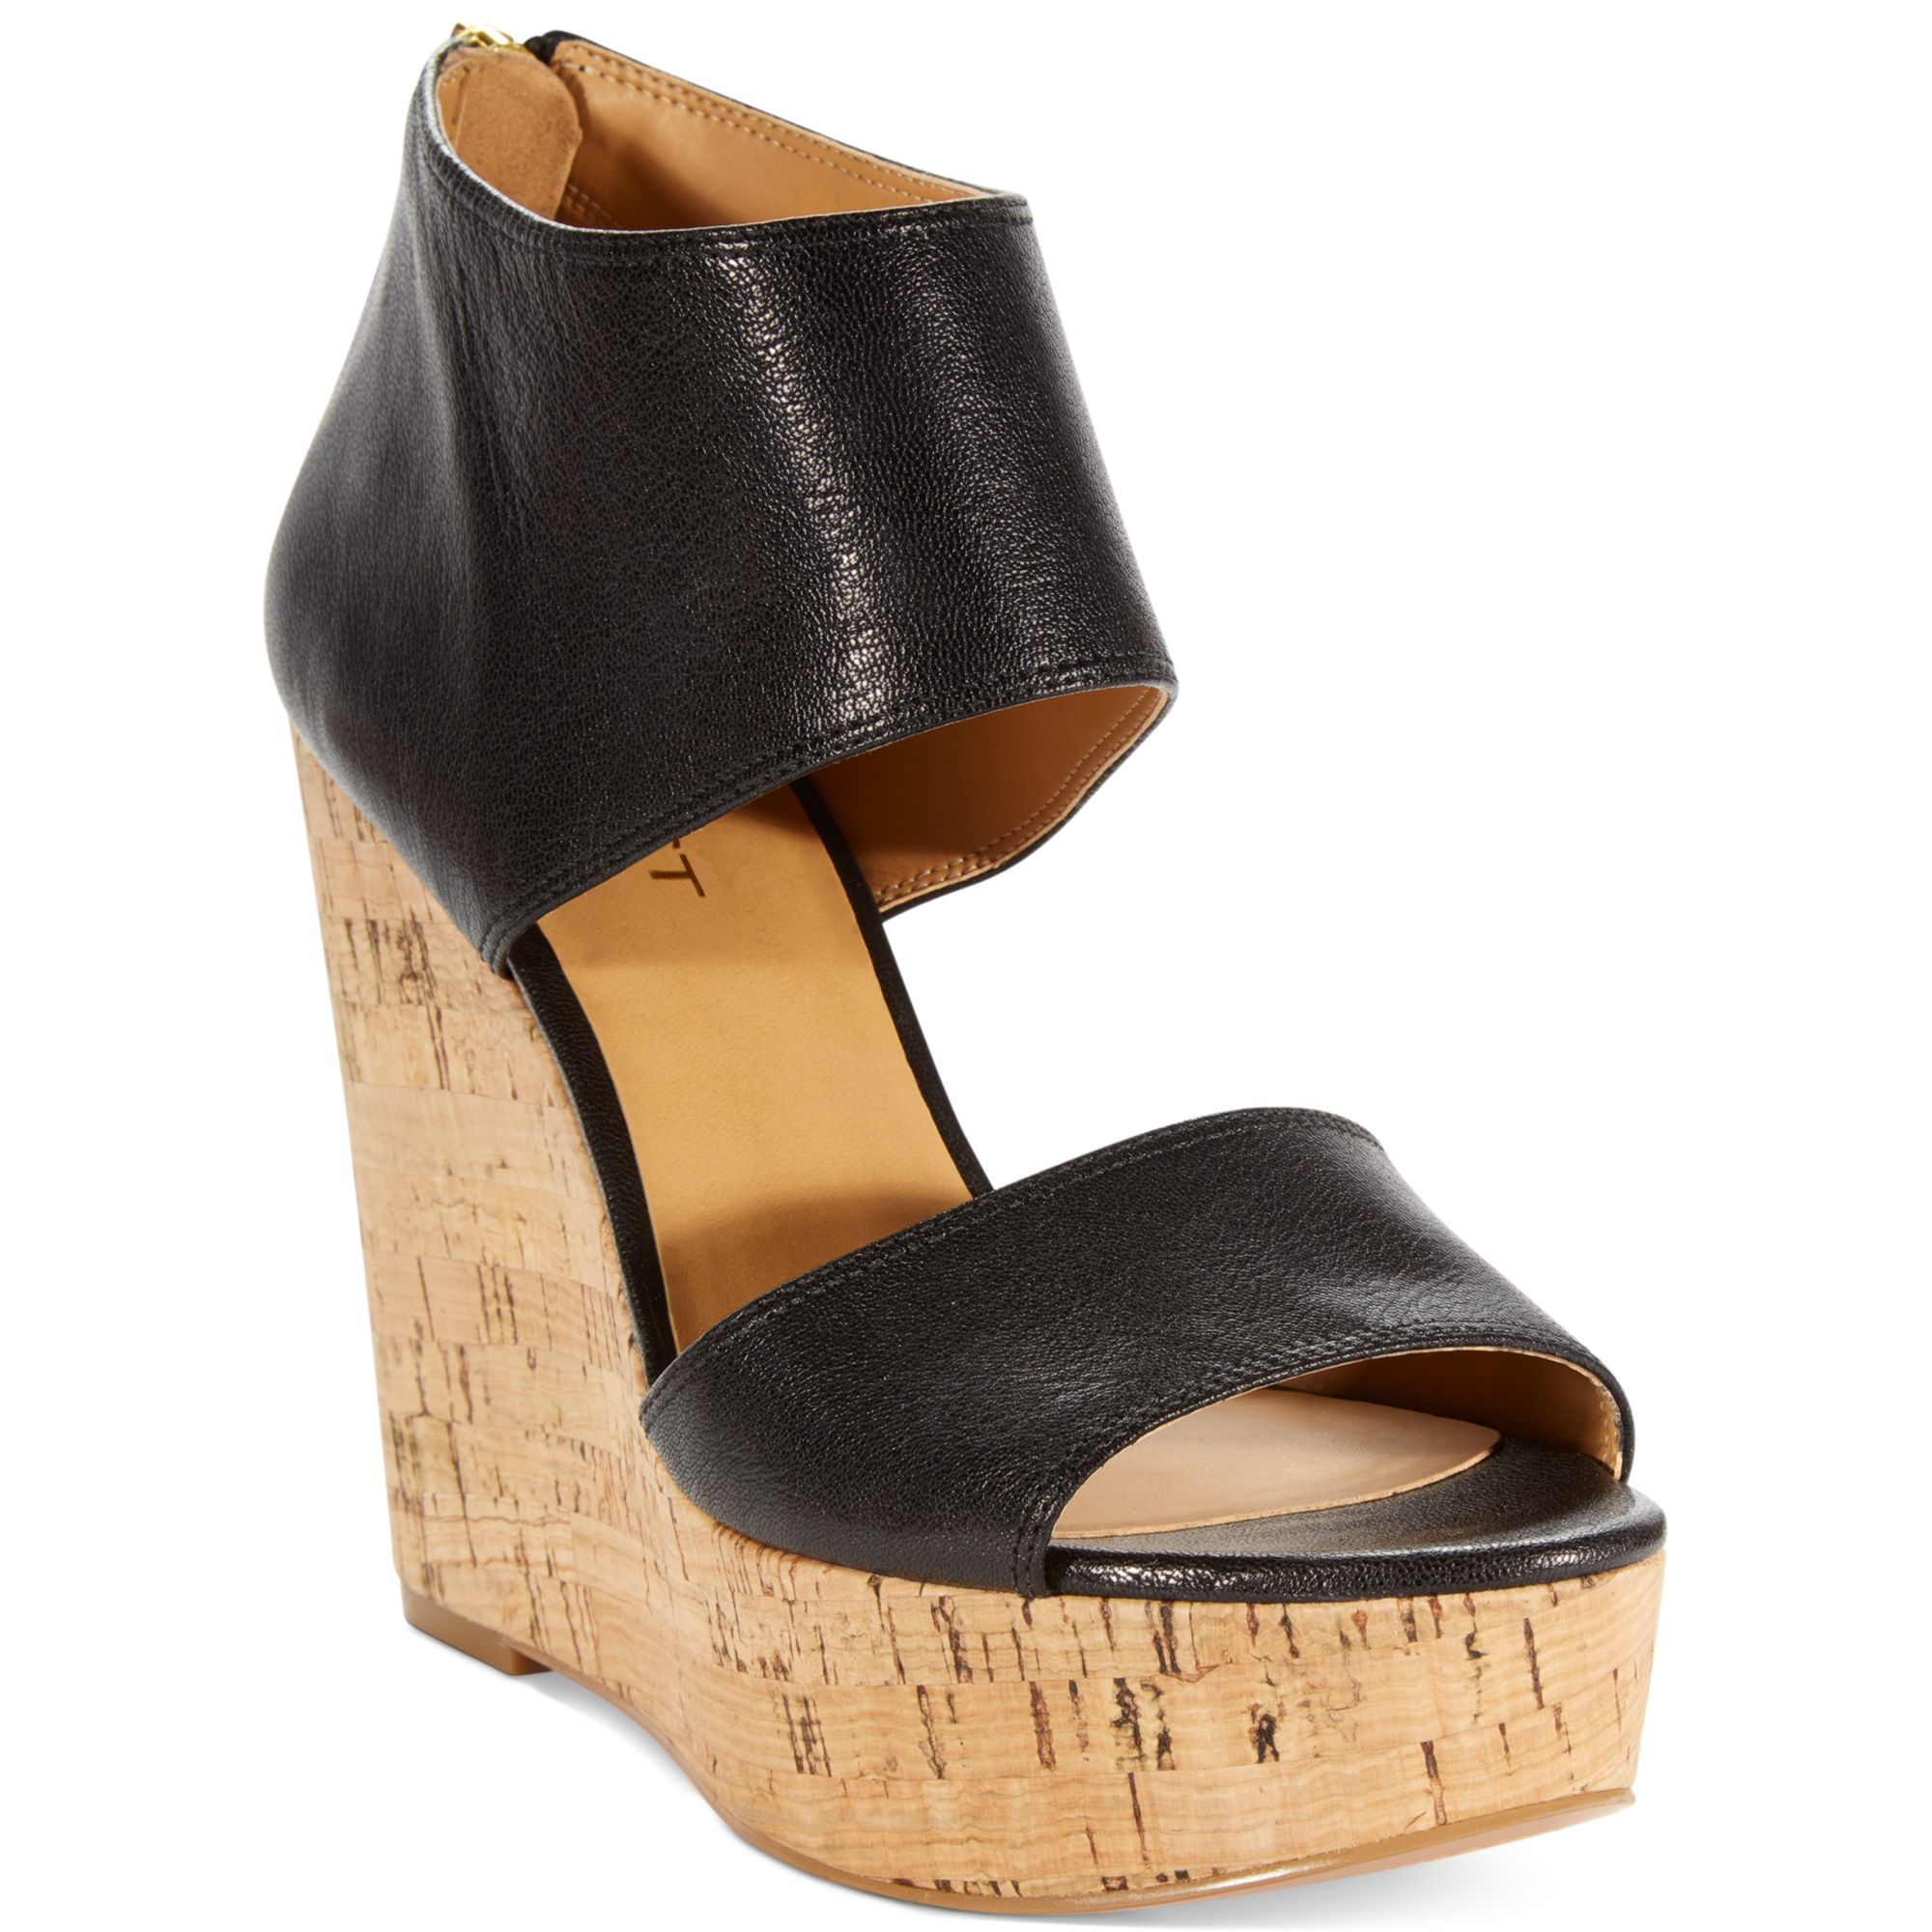 Nine West Caswell Platform Wedge Sandals in Black | Lyst